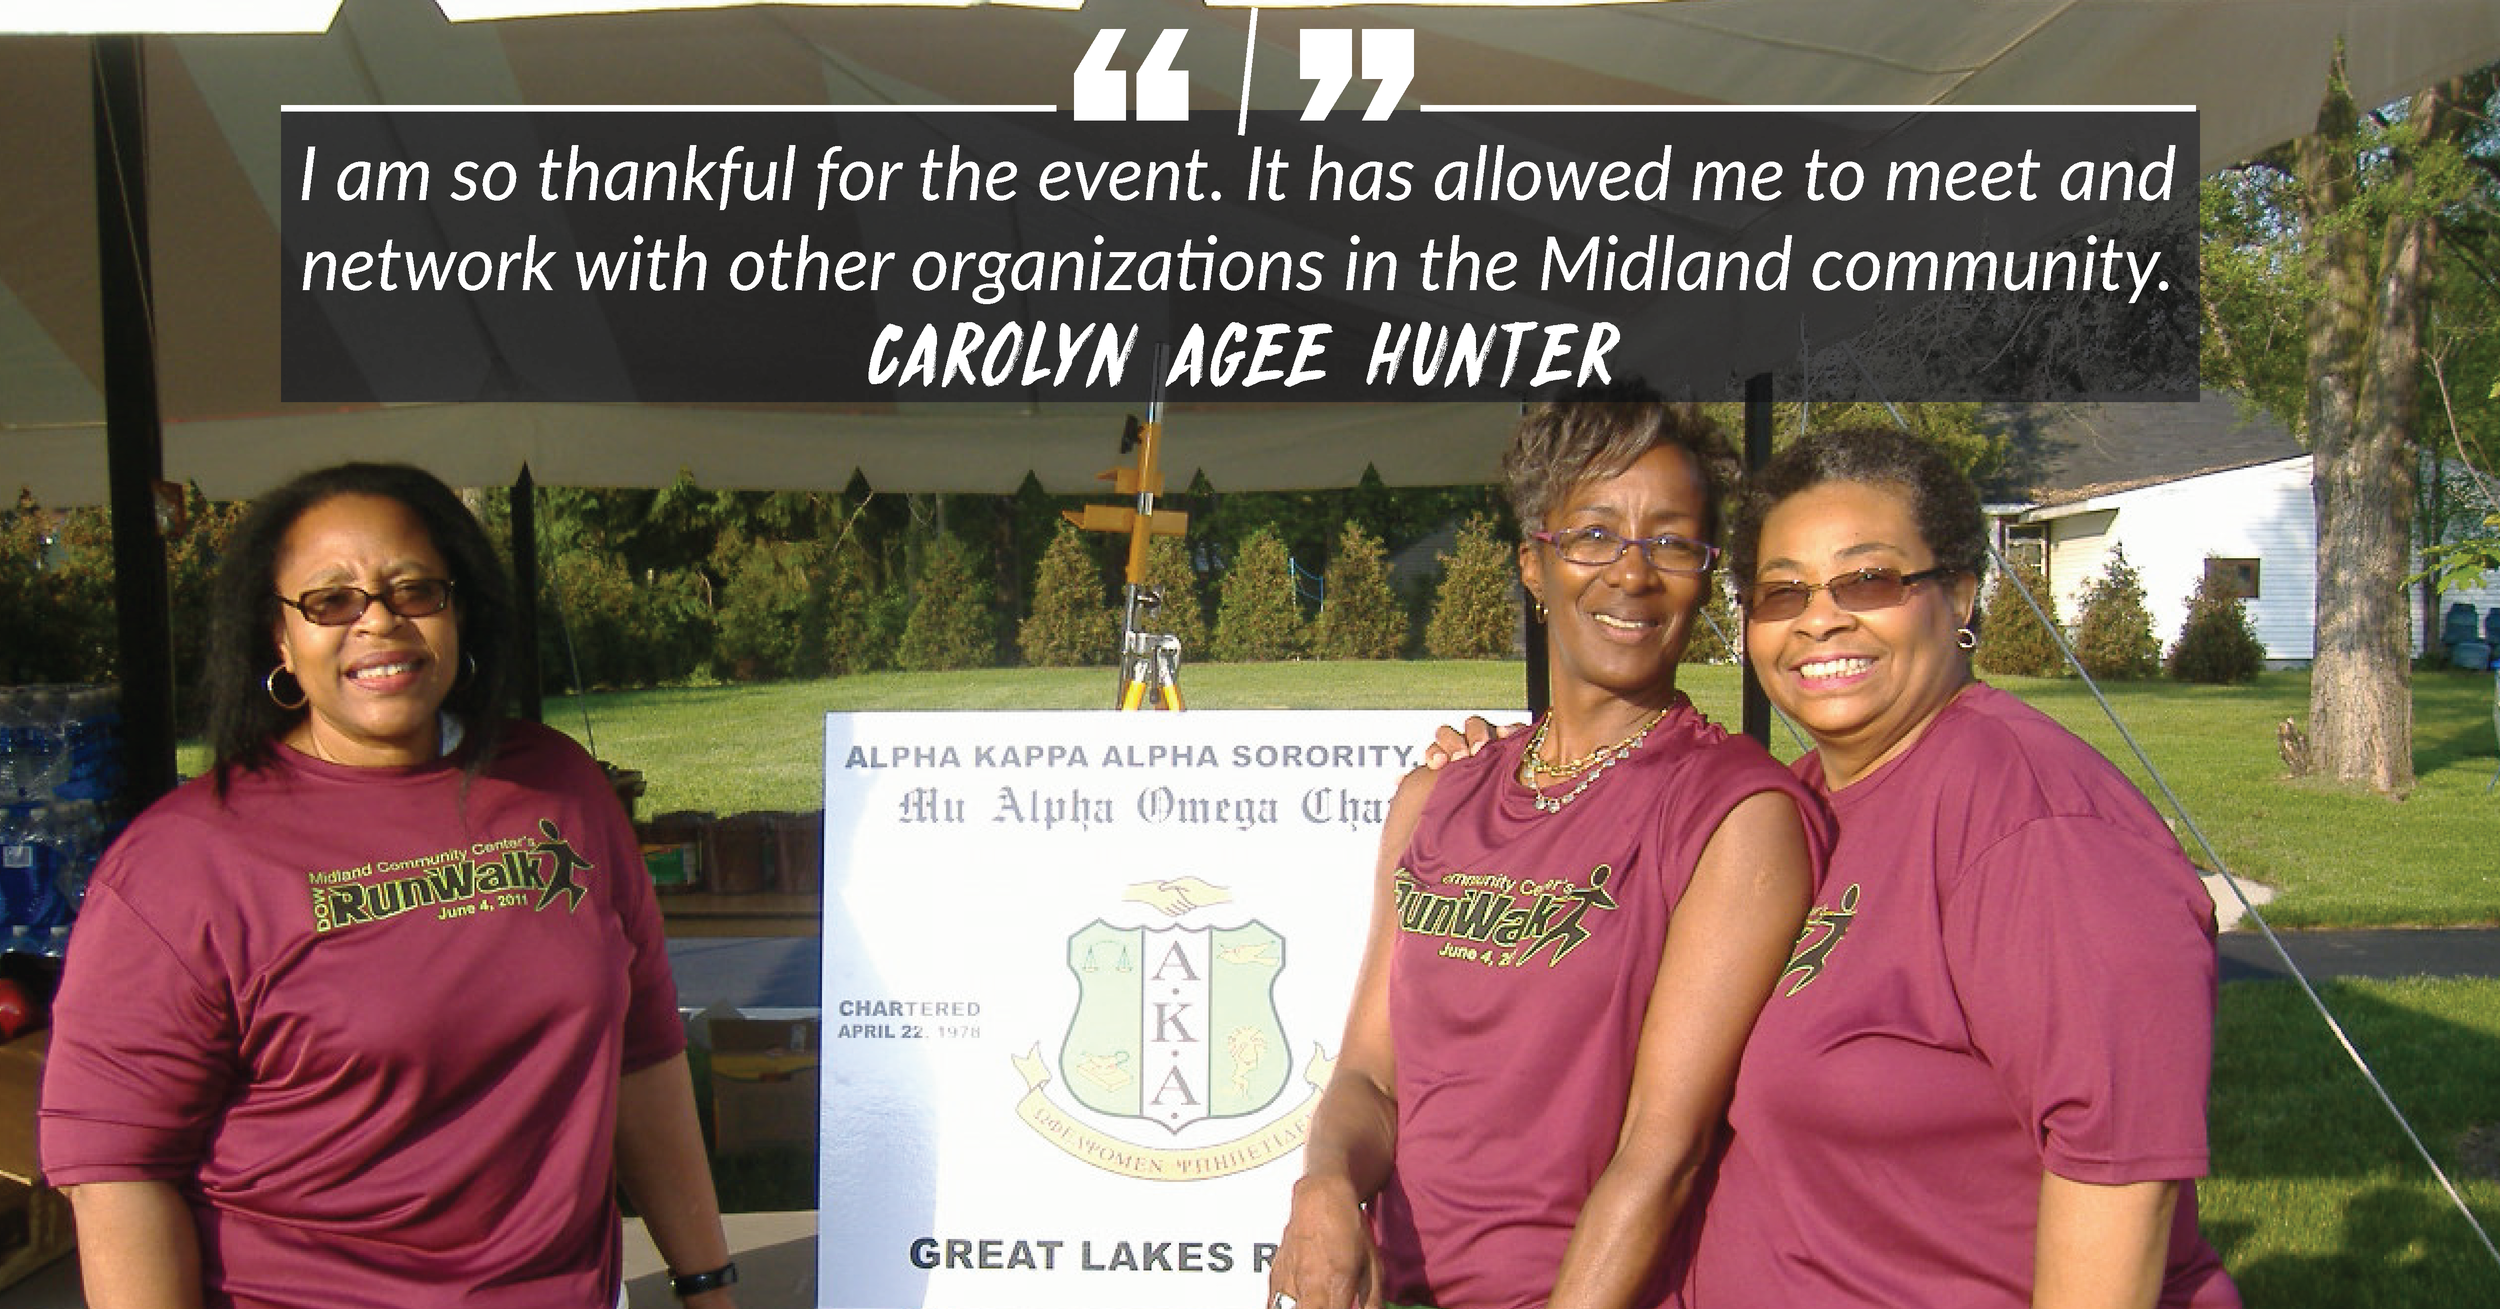 Carolyn Agee Hunter and her Alpha Kappa Alpha sorority sisters look forward to helping at Midland's biggest race. We'd love your help on June 1, too!